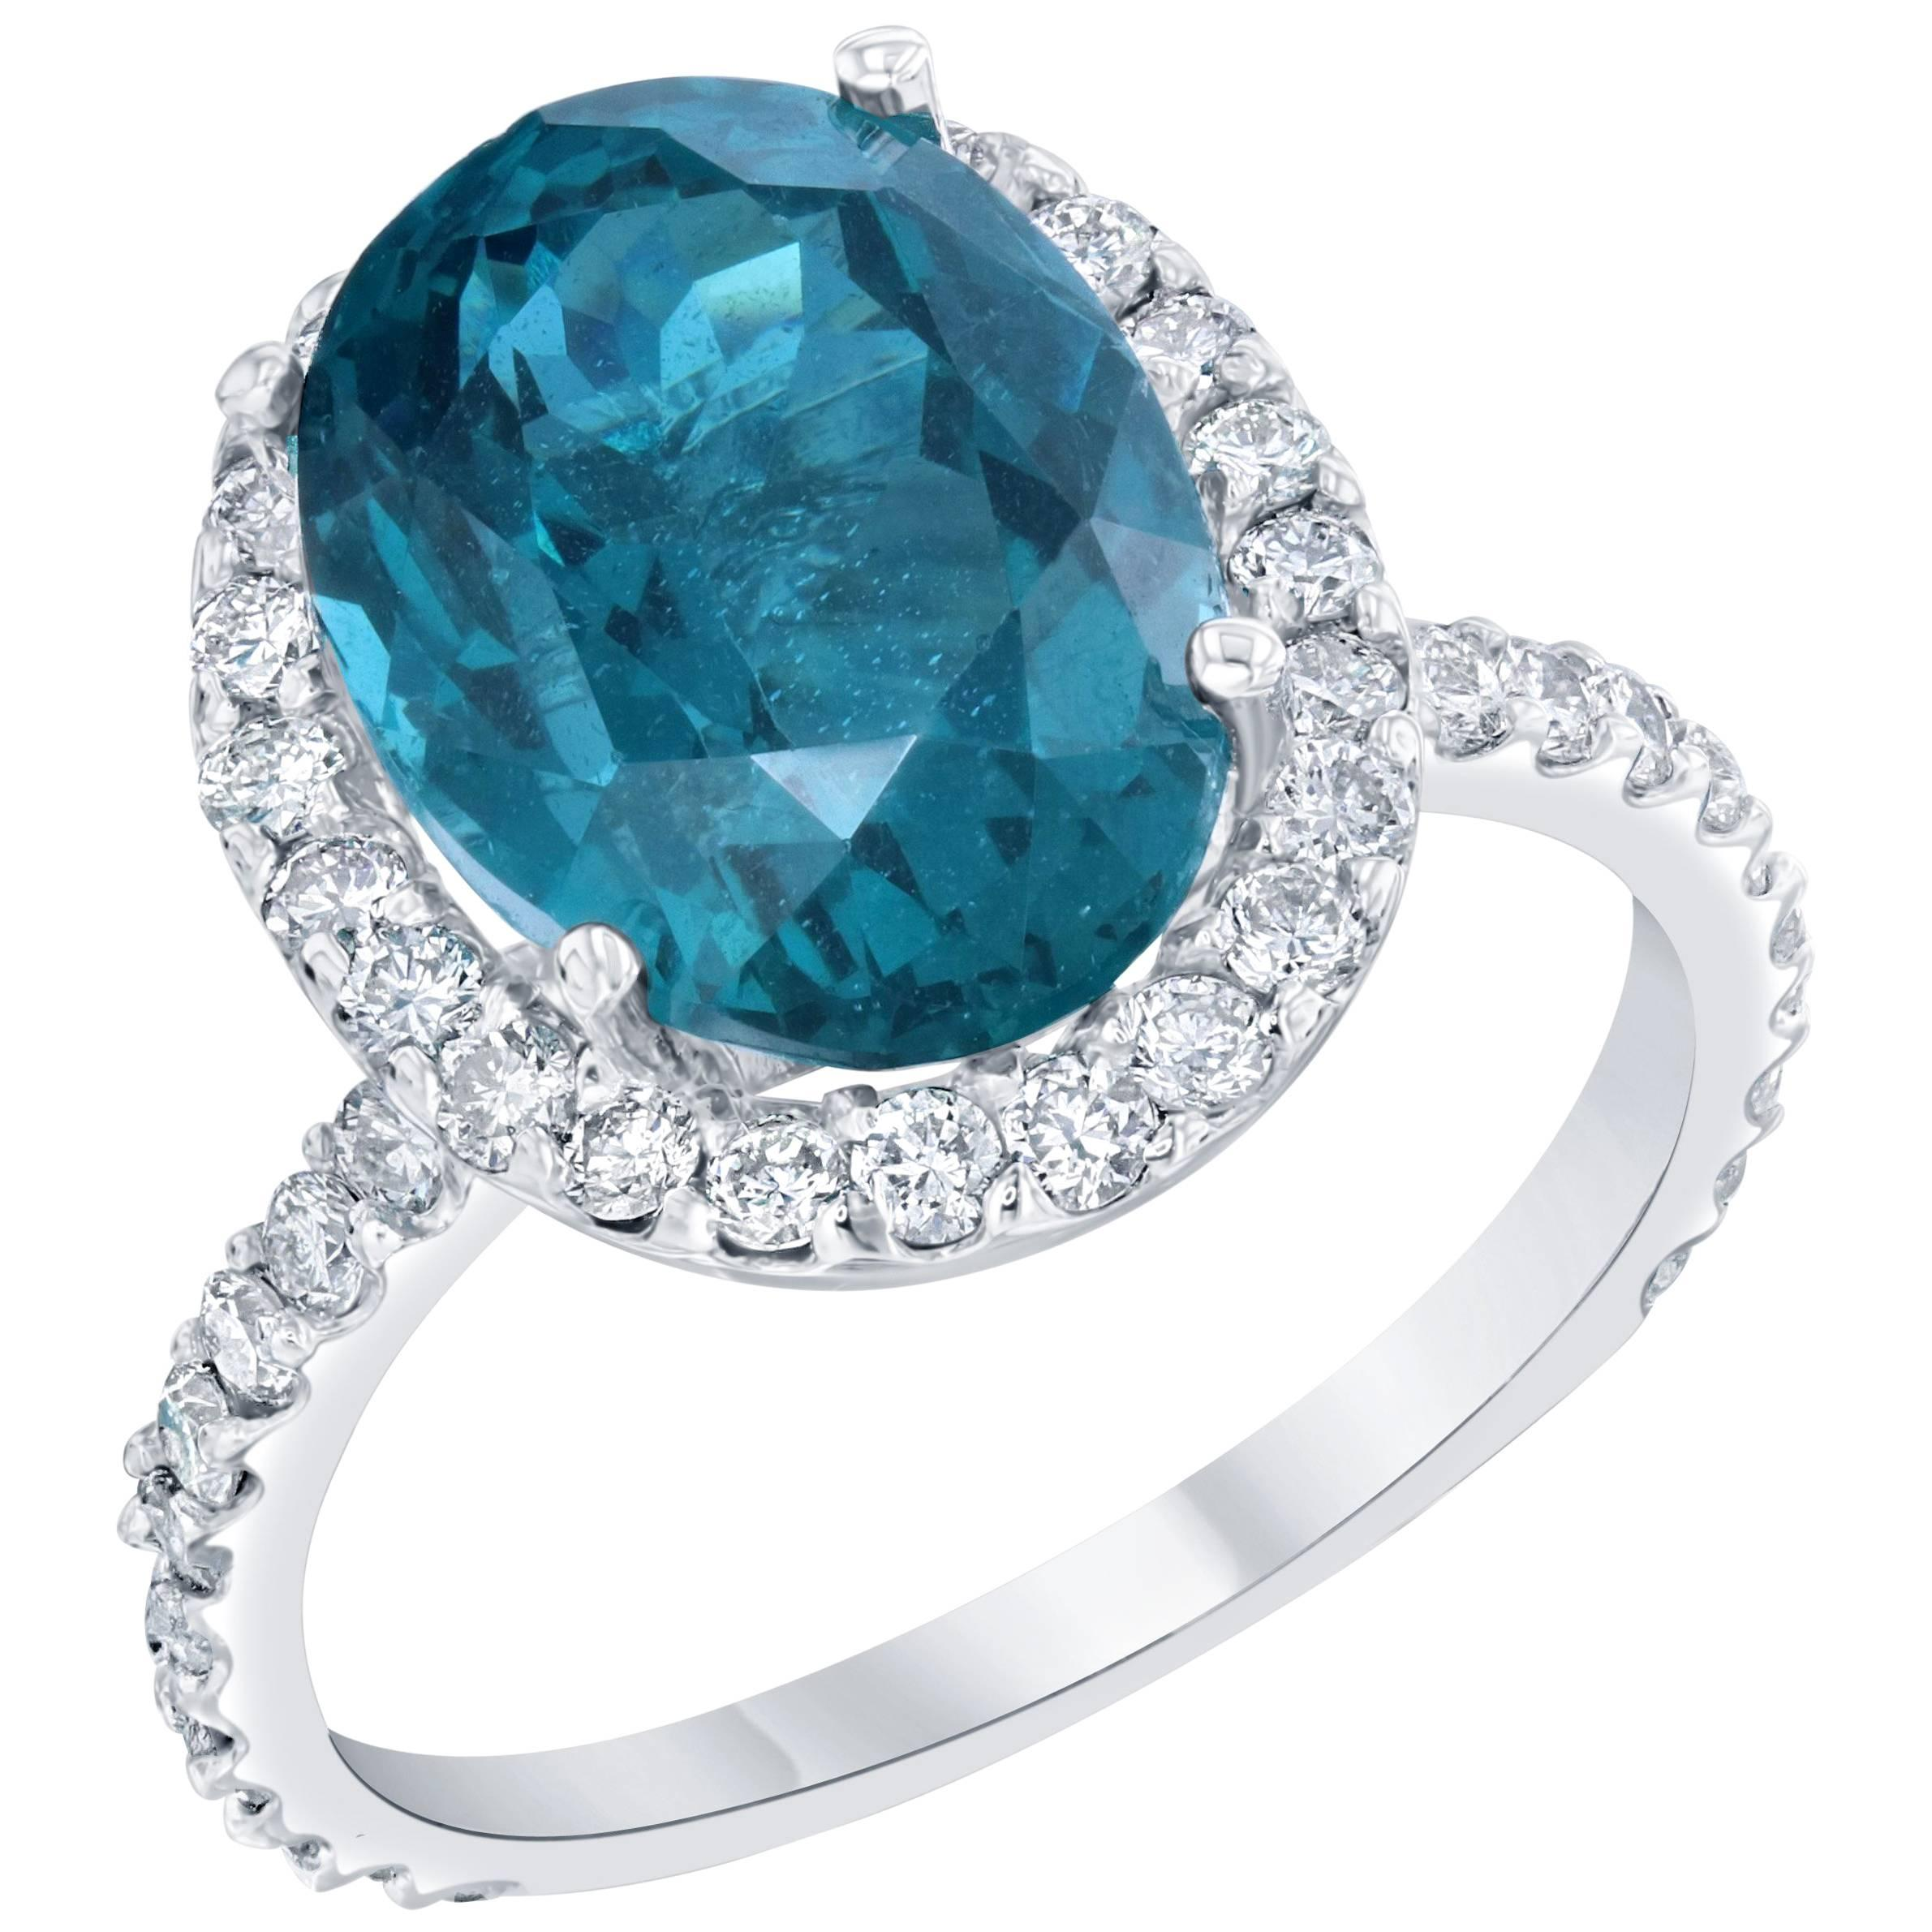 6.95 Carat Apatite Diamond 14 Karat White Gold Halo Engagement Ring